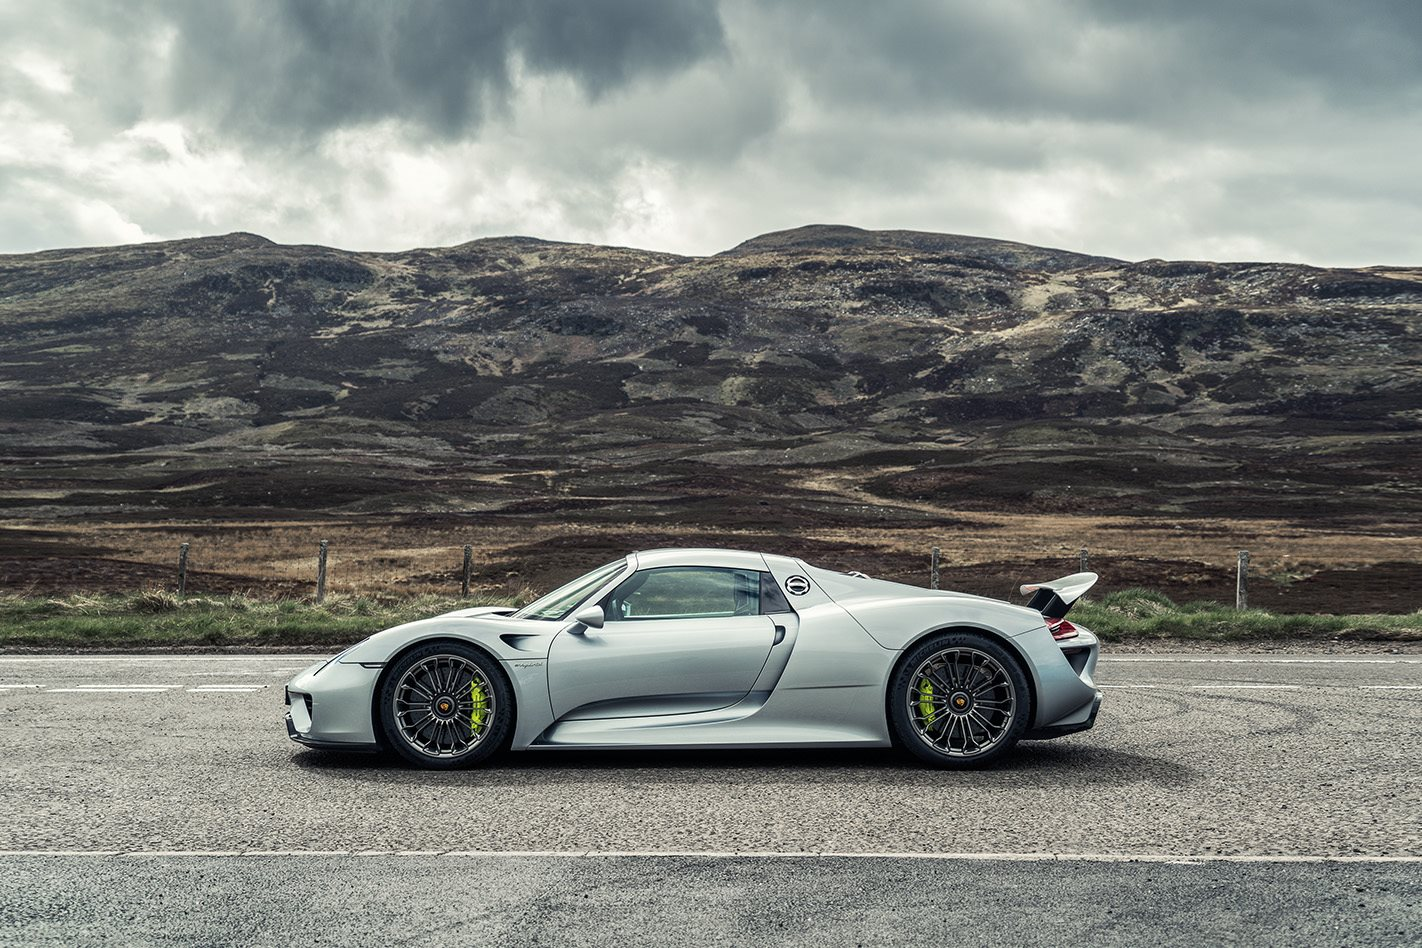 Porsche 918 hypercar replacement delayed